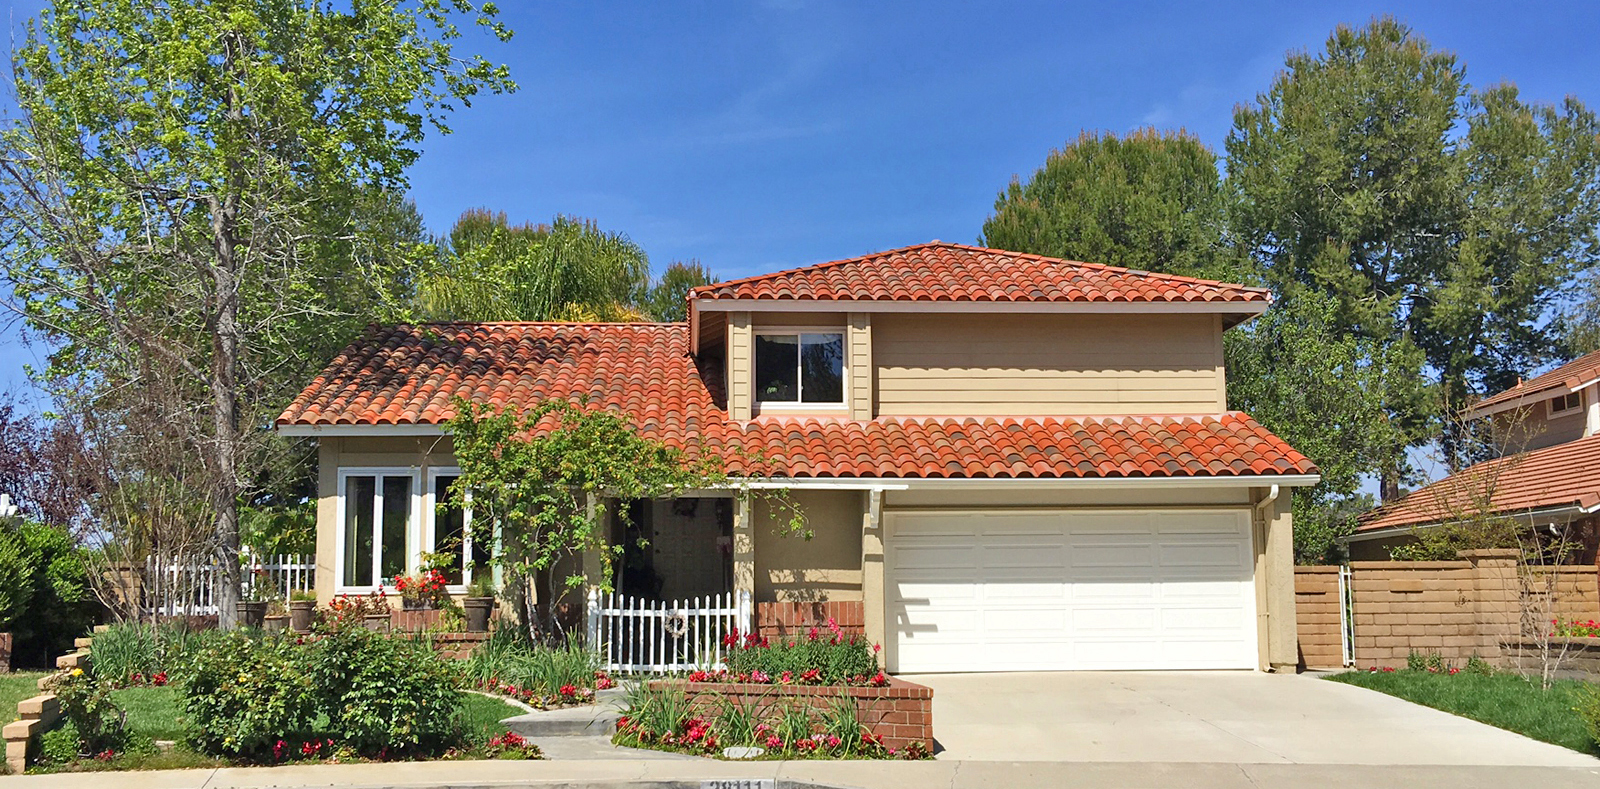 Castille Homes for Sale in Mission Viejo